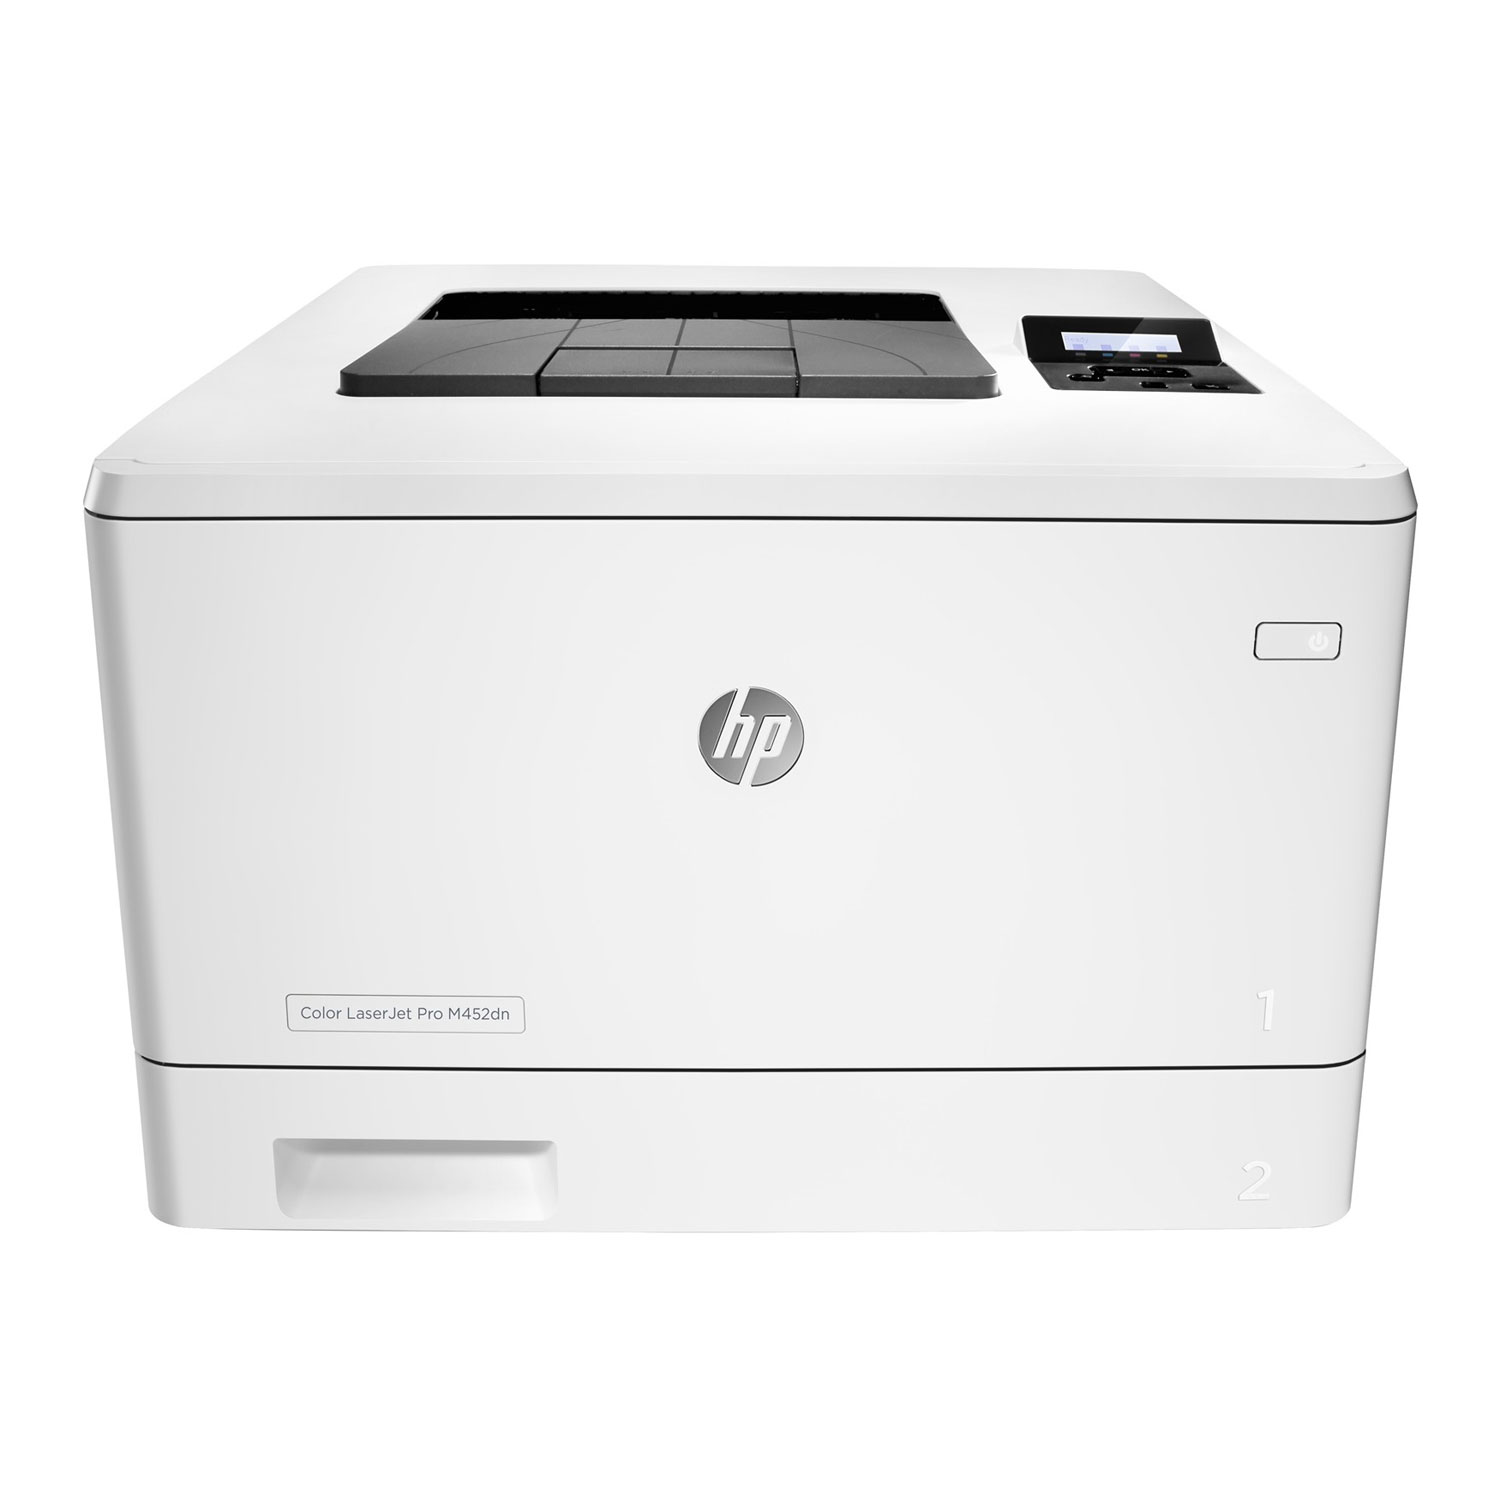 hp color laserjet enterprise m452dn imprimante laser hp sur ldlc. Black Bedroom Furniture Sets. Home Design Ideas